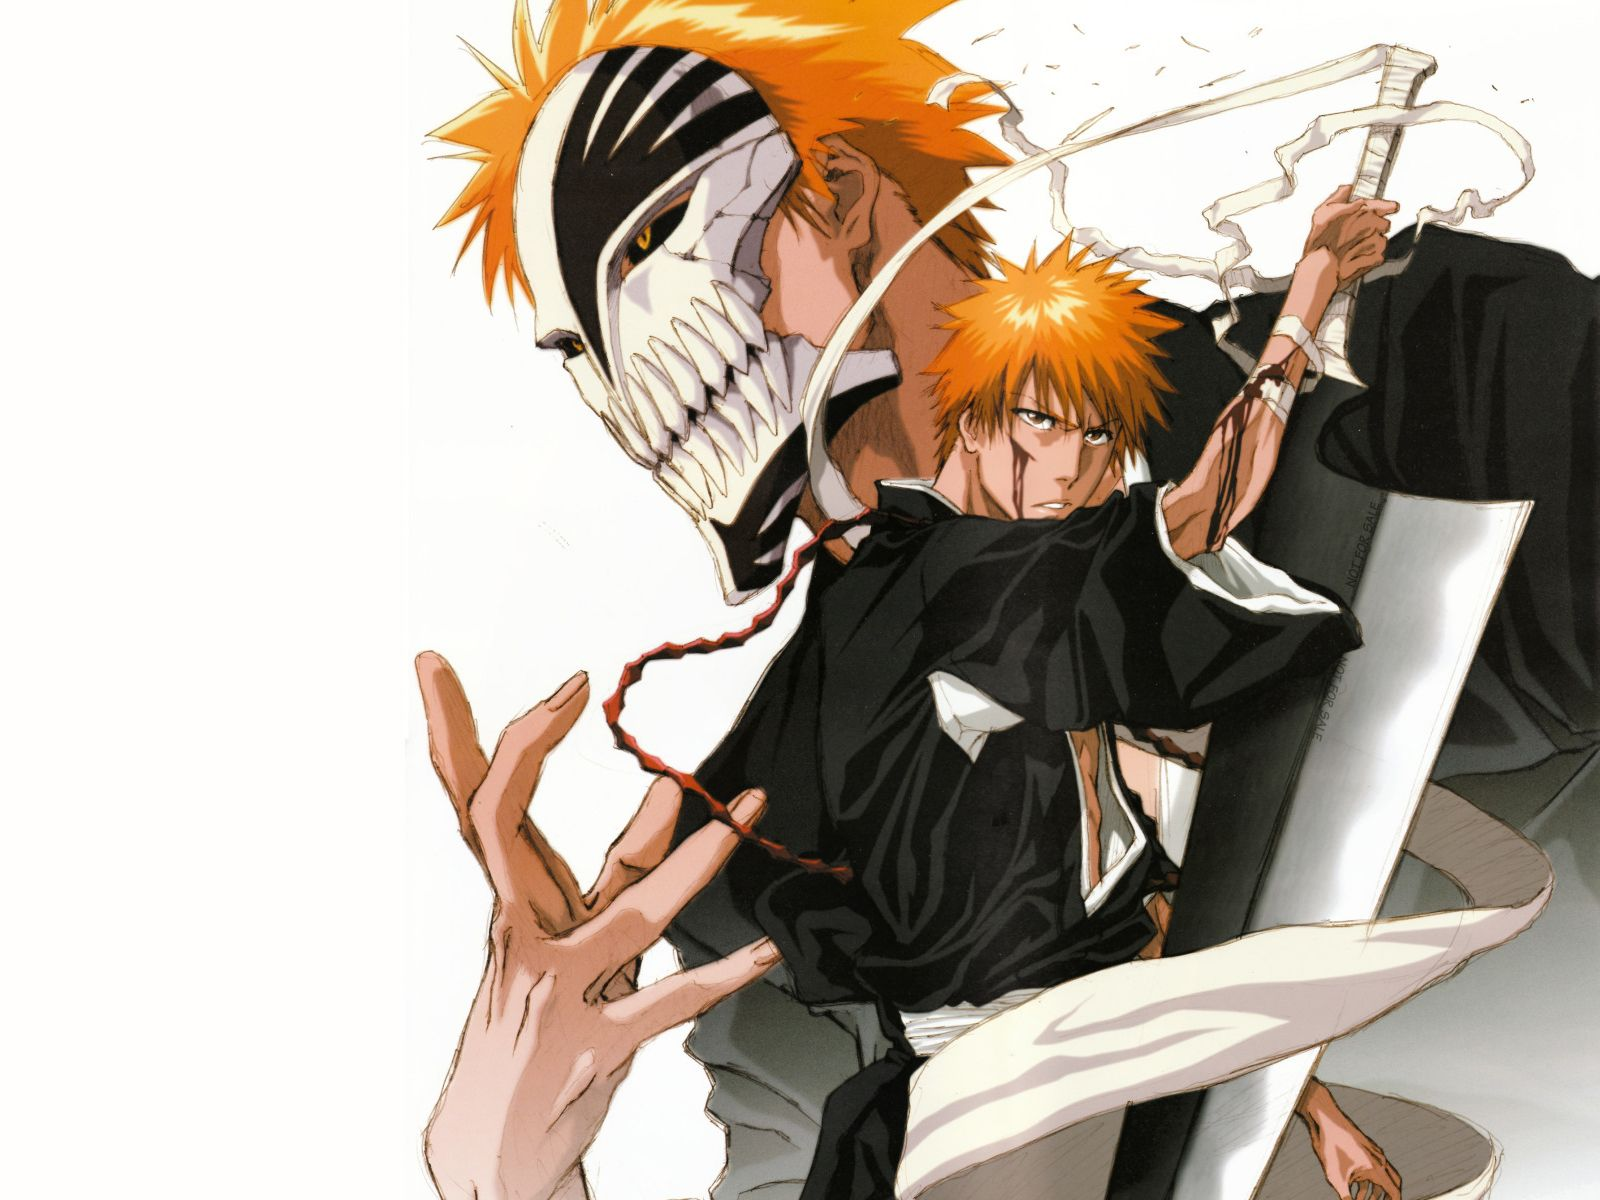 Anime Recommendations 5 Great Animes Like Bleach Bleach Anime Bleach Characters Bleach Manga